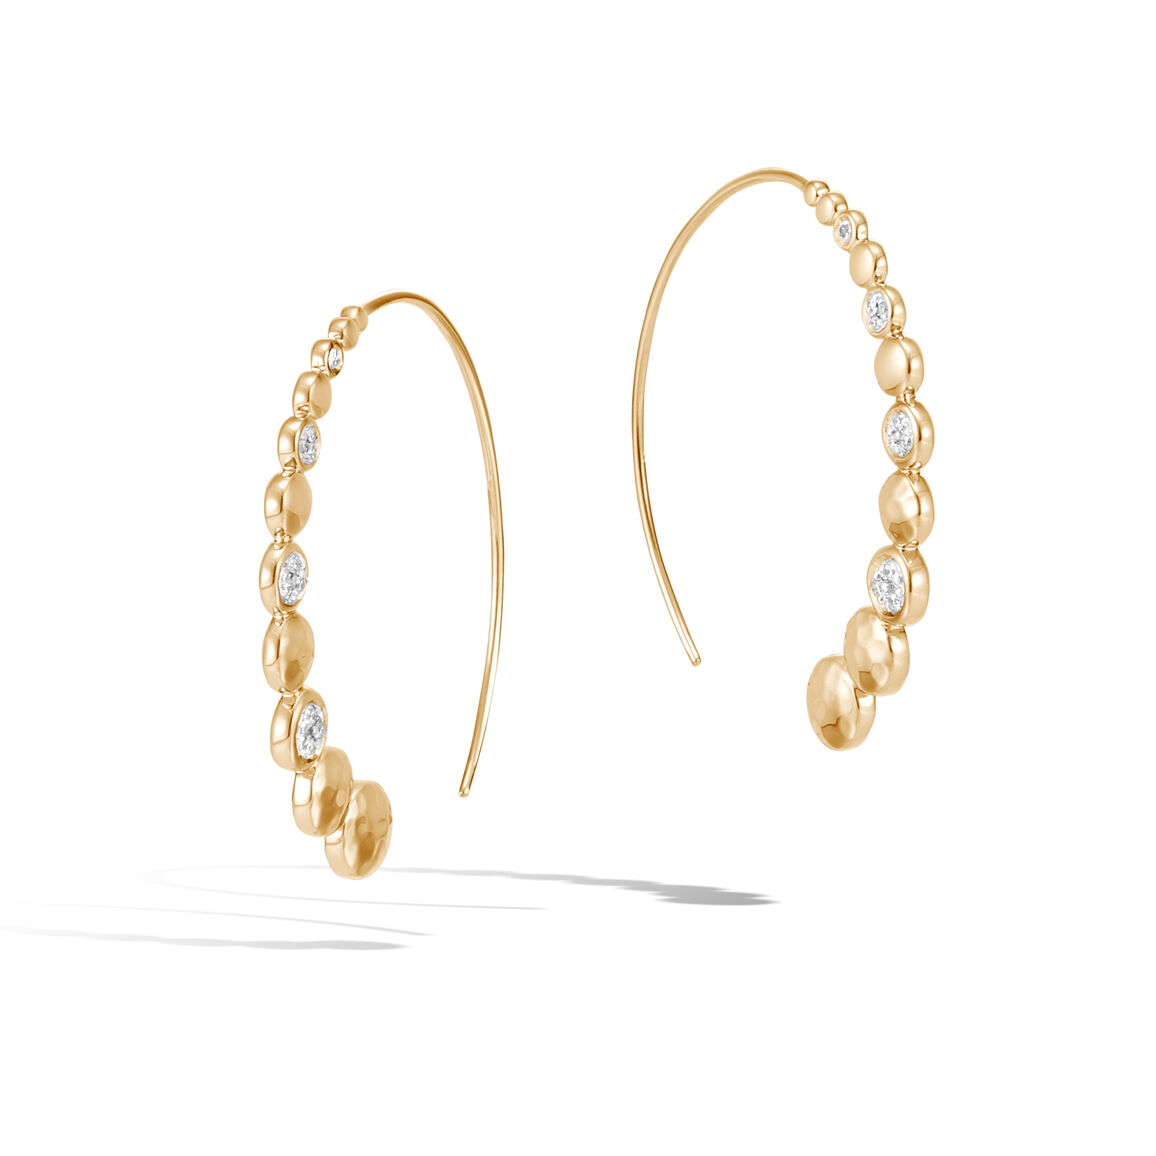 Dot Medium Hoop Earring in Hammered 18K Gold with Diamonds